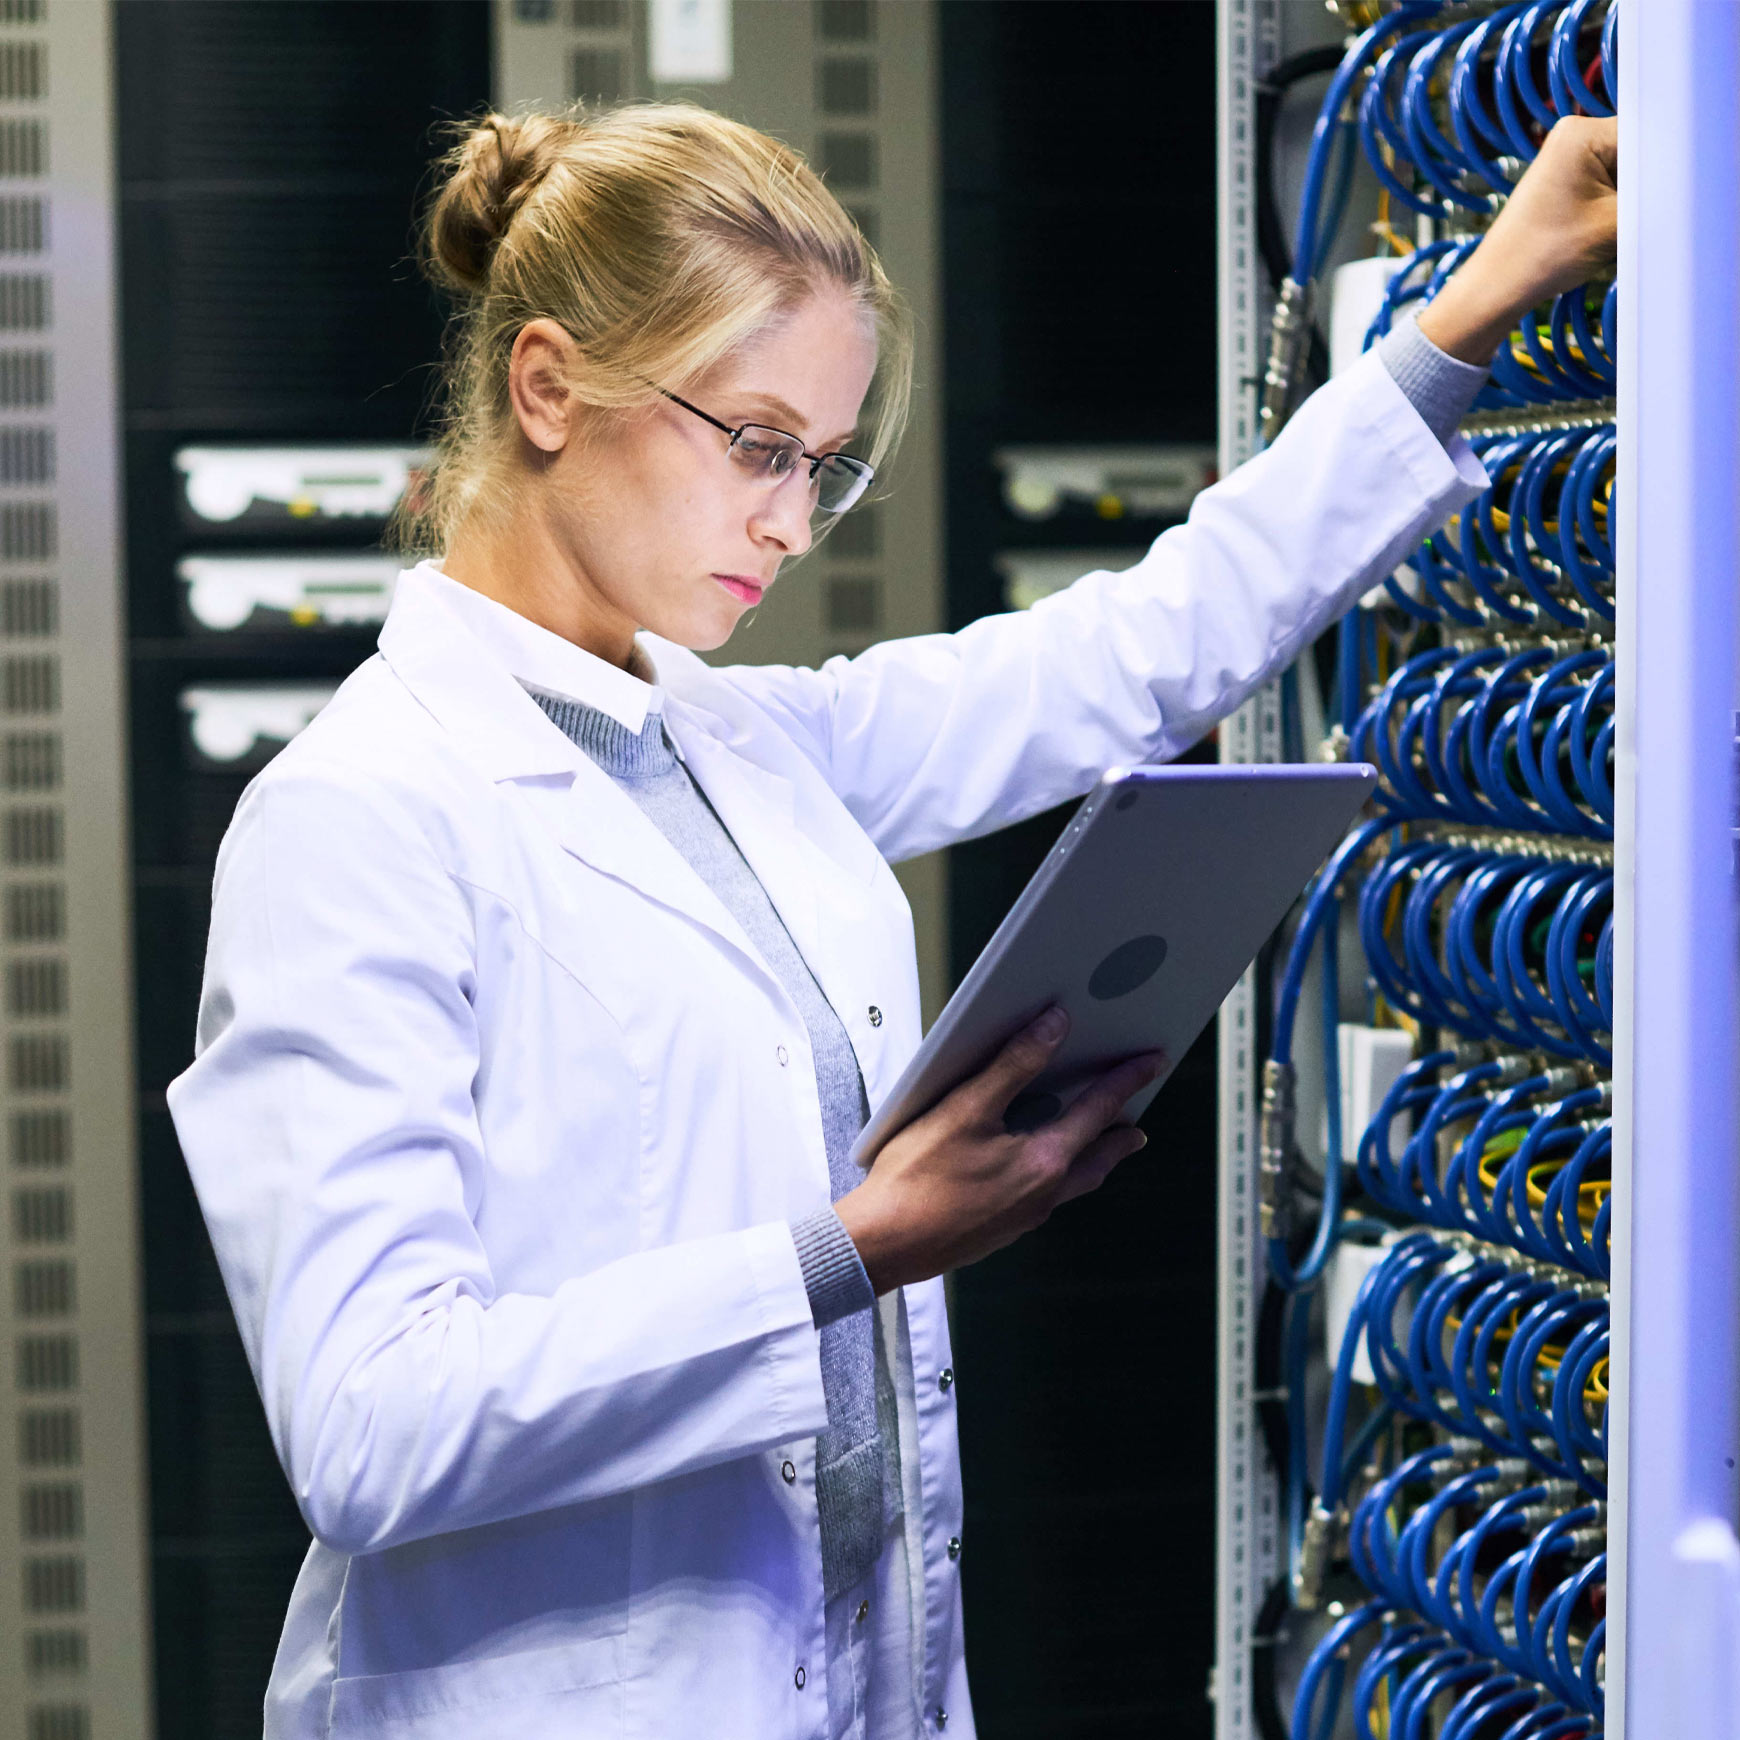 woman using tablet next to servers